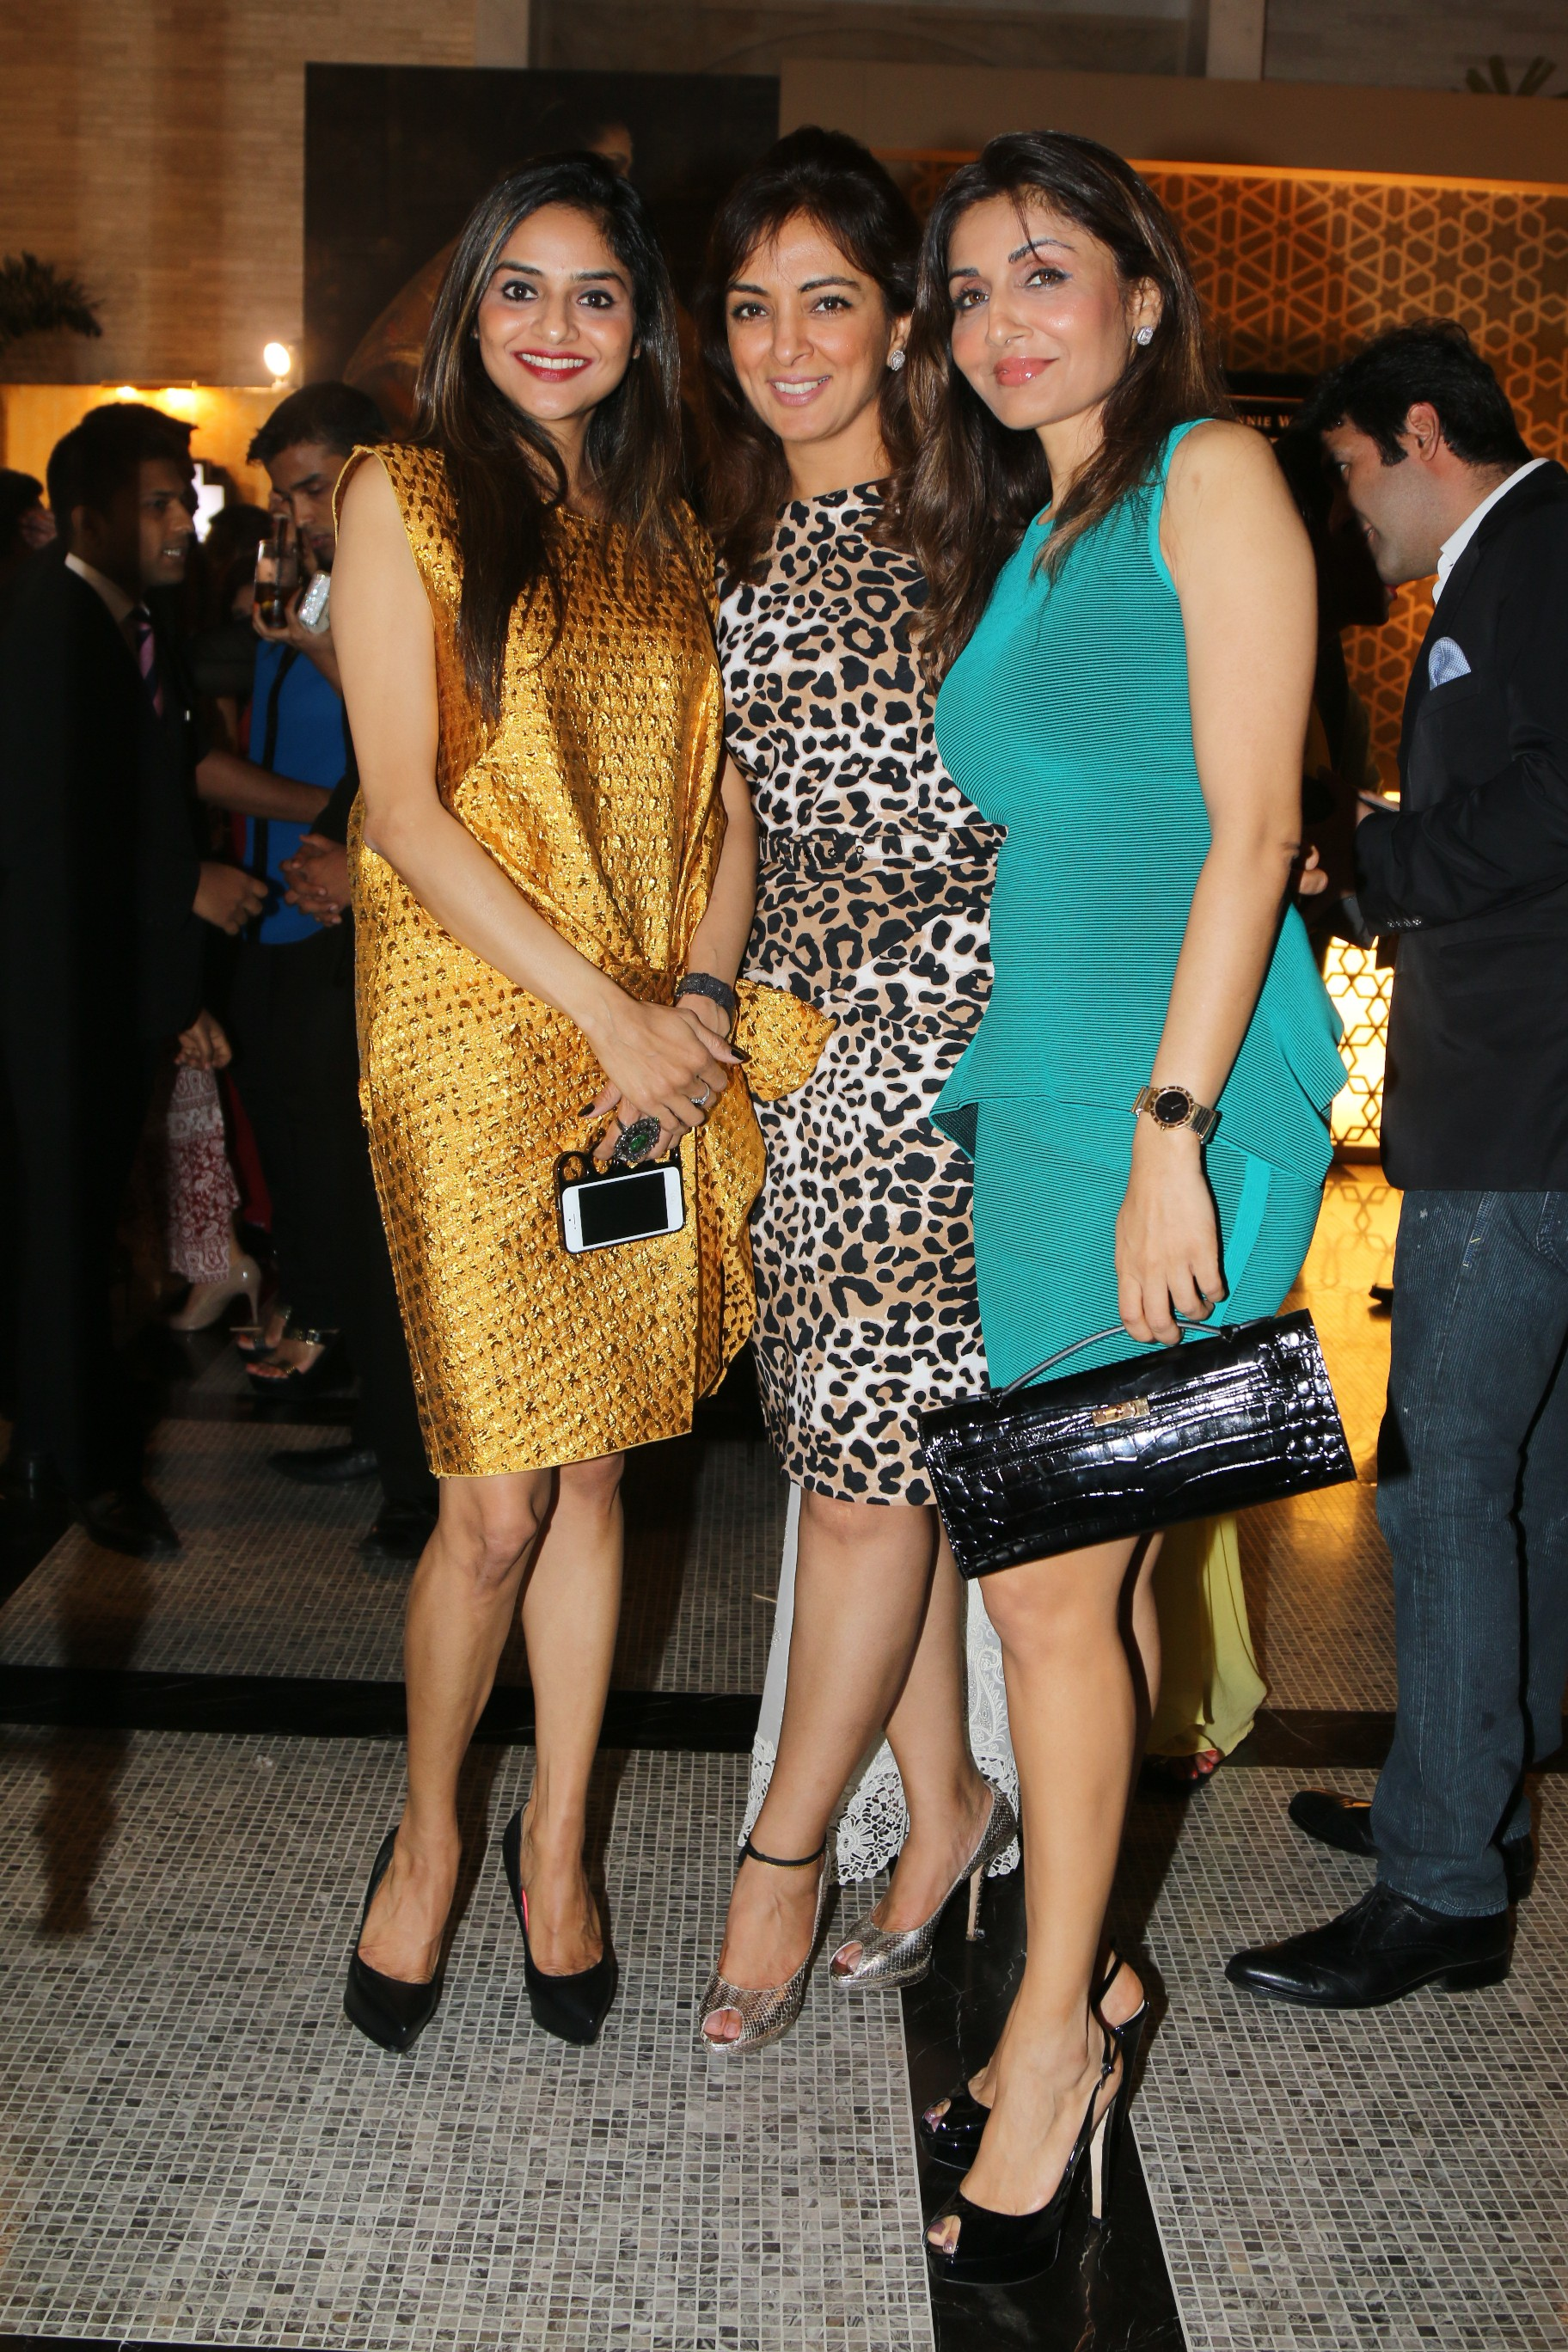 Madhu Shah, Lata Patel and Queenie